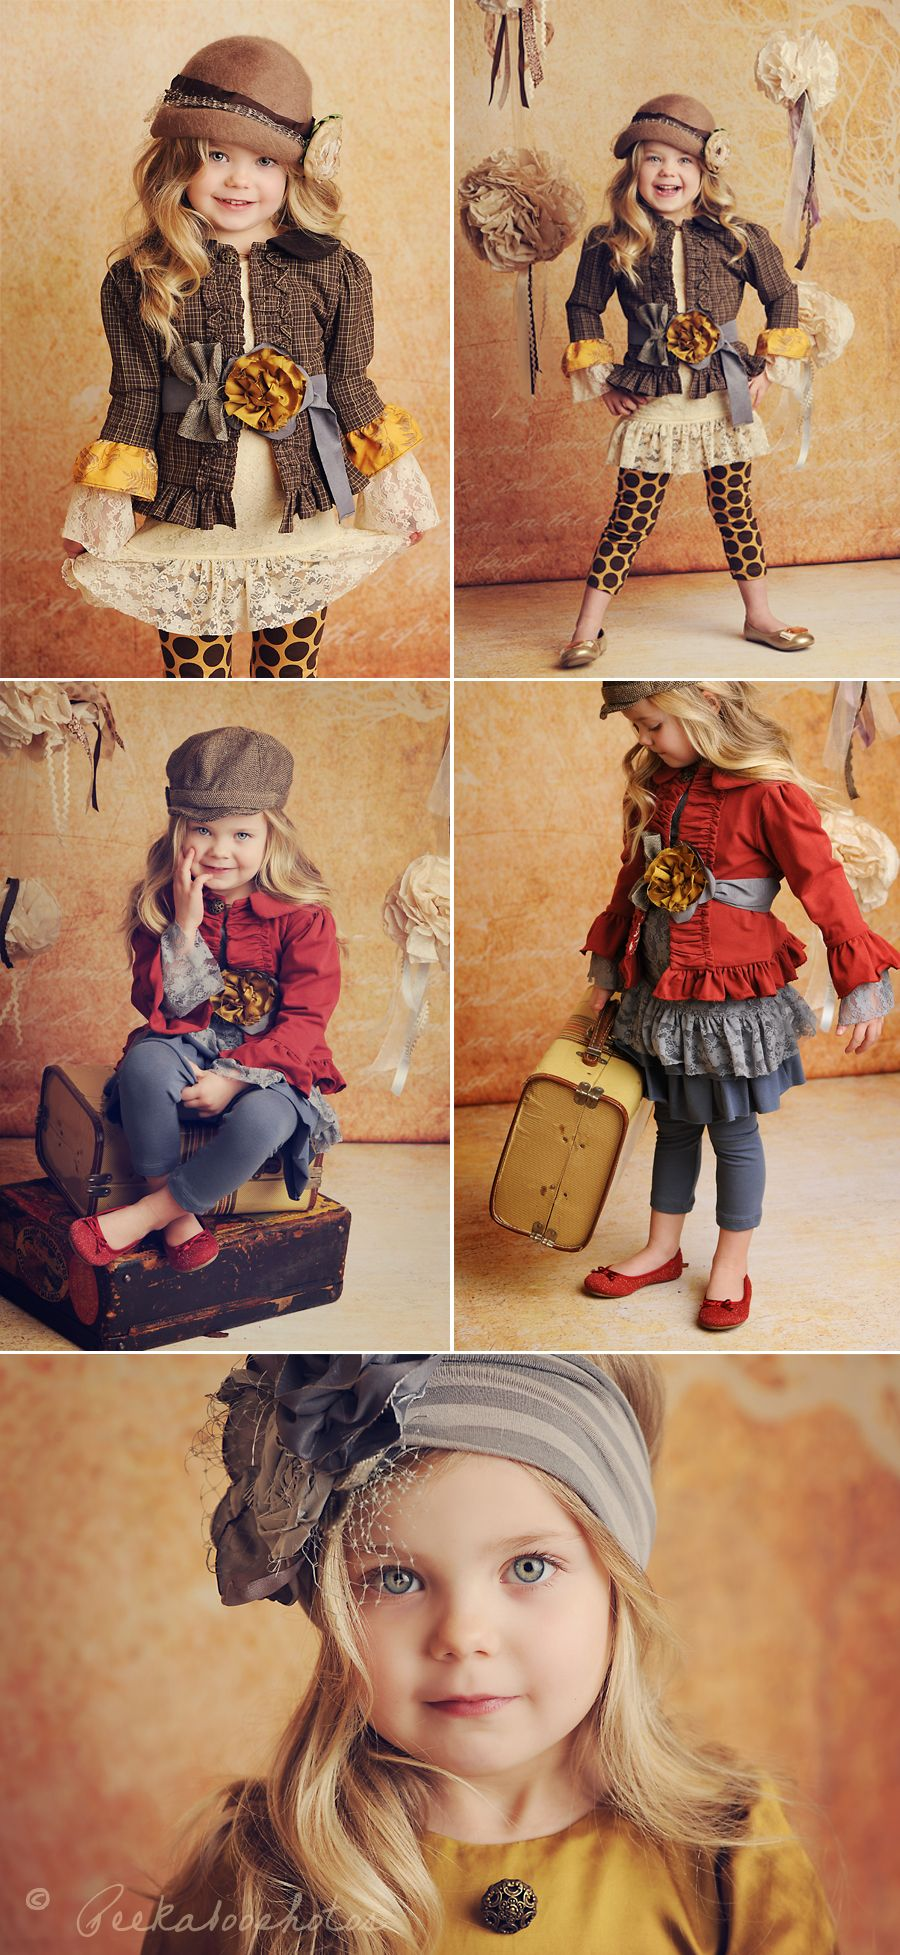 If I have a daughter, she will dress like this...at least once. :)